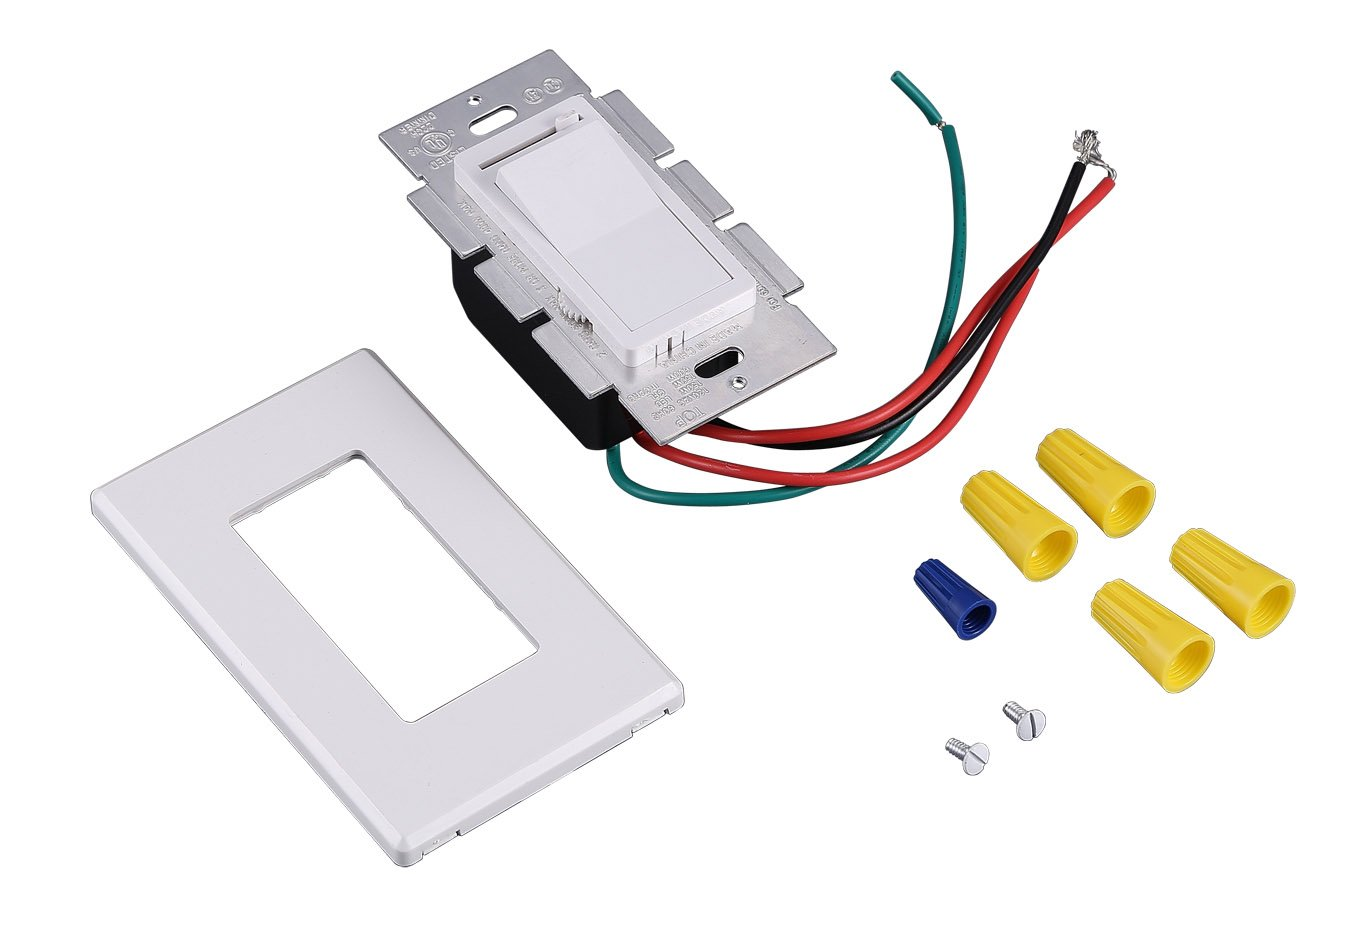 Cloudy Bay In Wall Dimmer Switch For Led Light Cfl Incandescent 3 Fitting To Old Electrical Wiringdimmerinstructionsjpg Way Single Pole Dimmable Slide 600 Watt Max Cover Plate Included